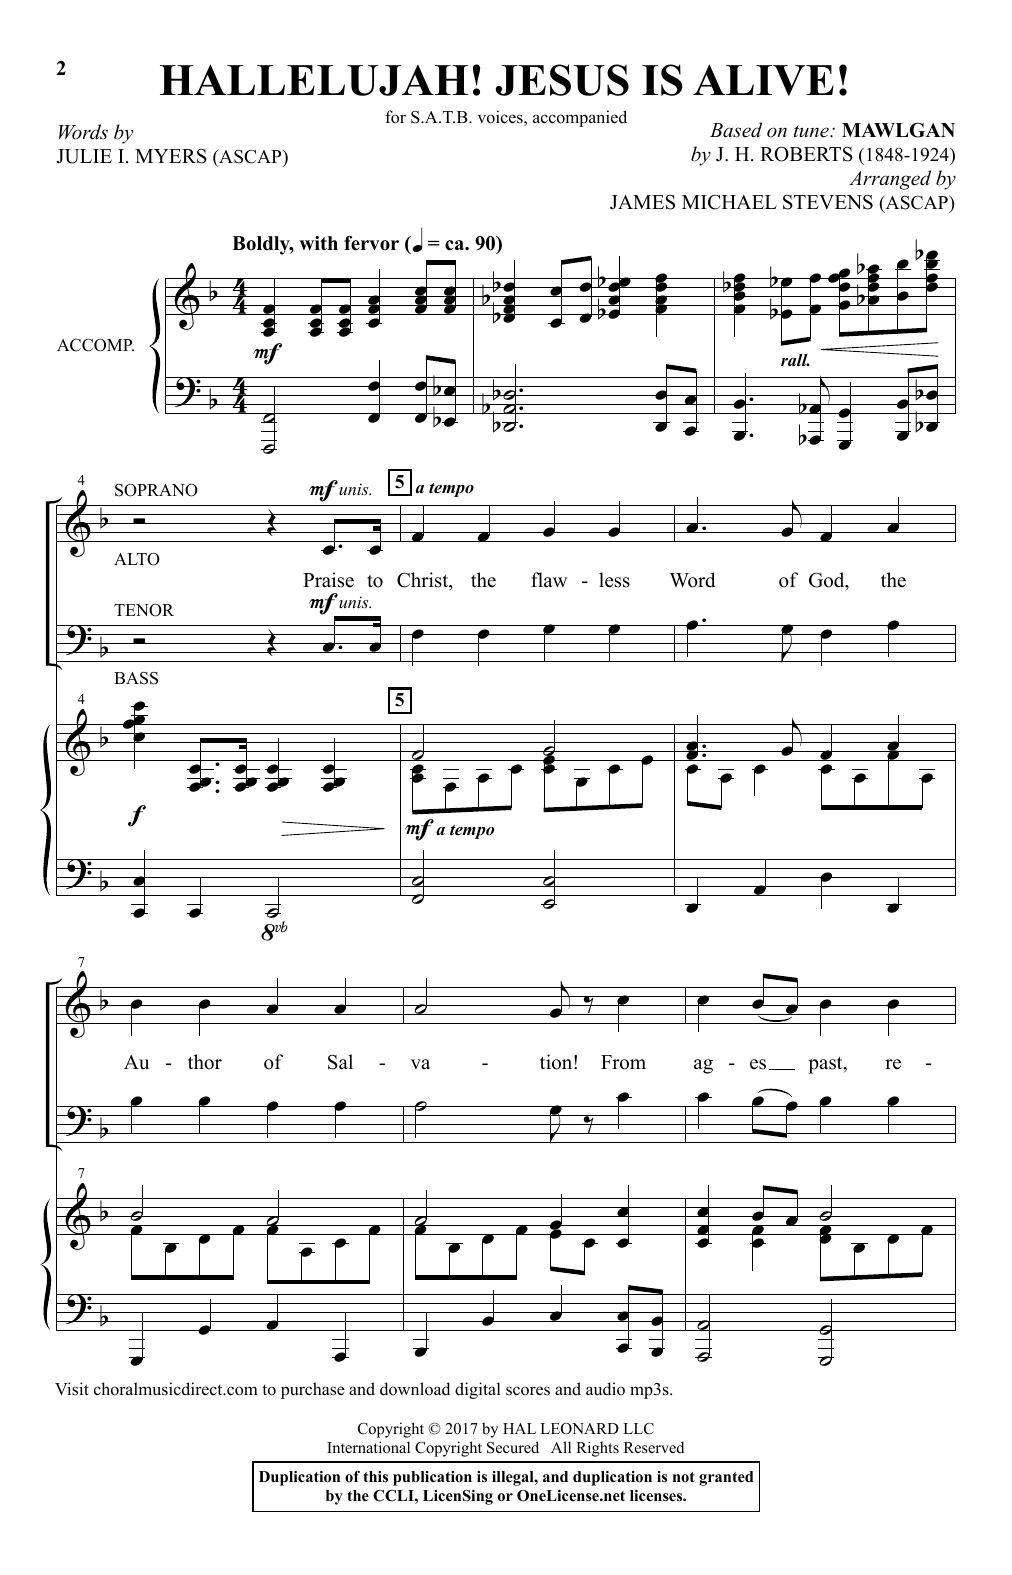 Hallelujah! Jesus Is Alive! Sheet Music